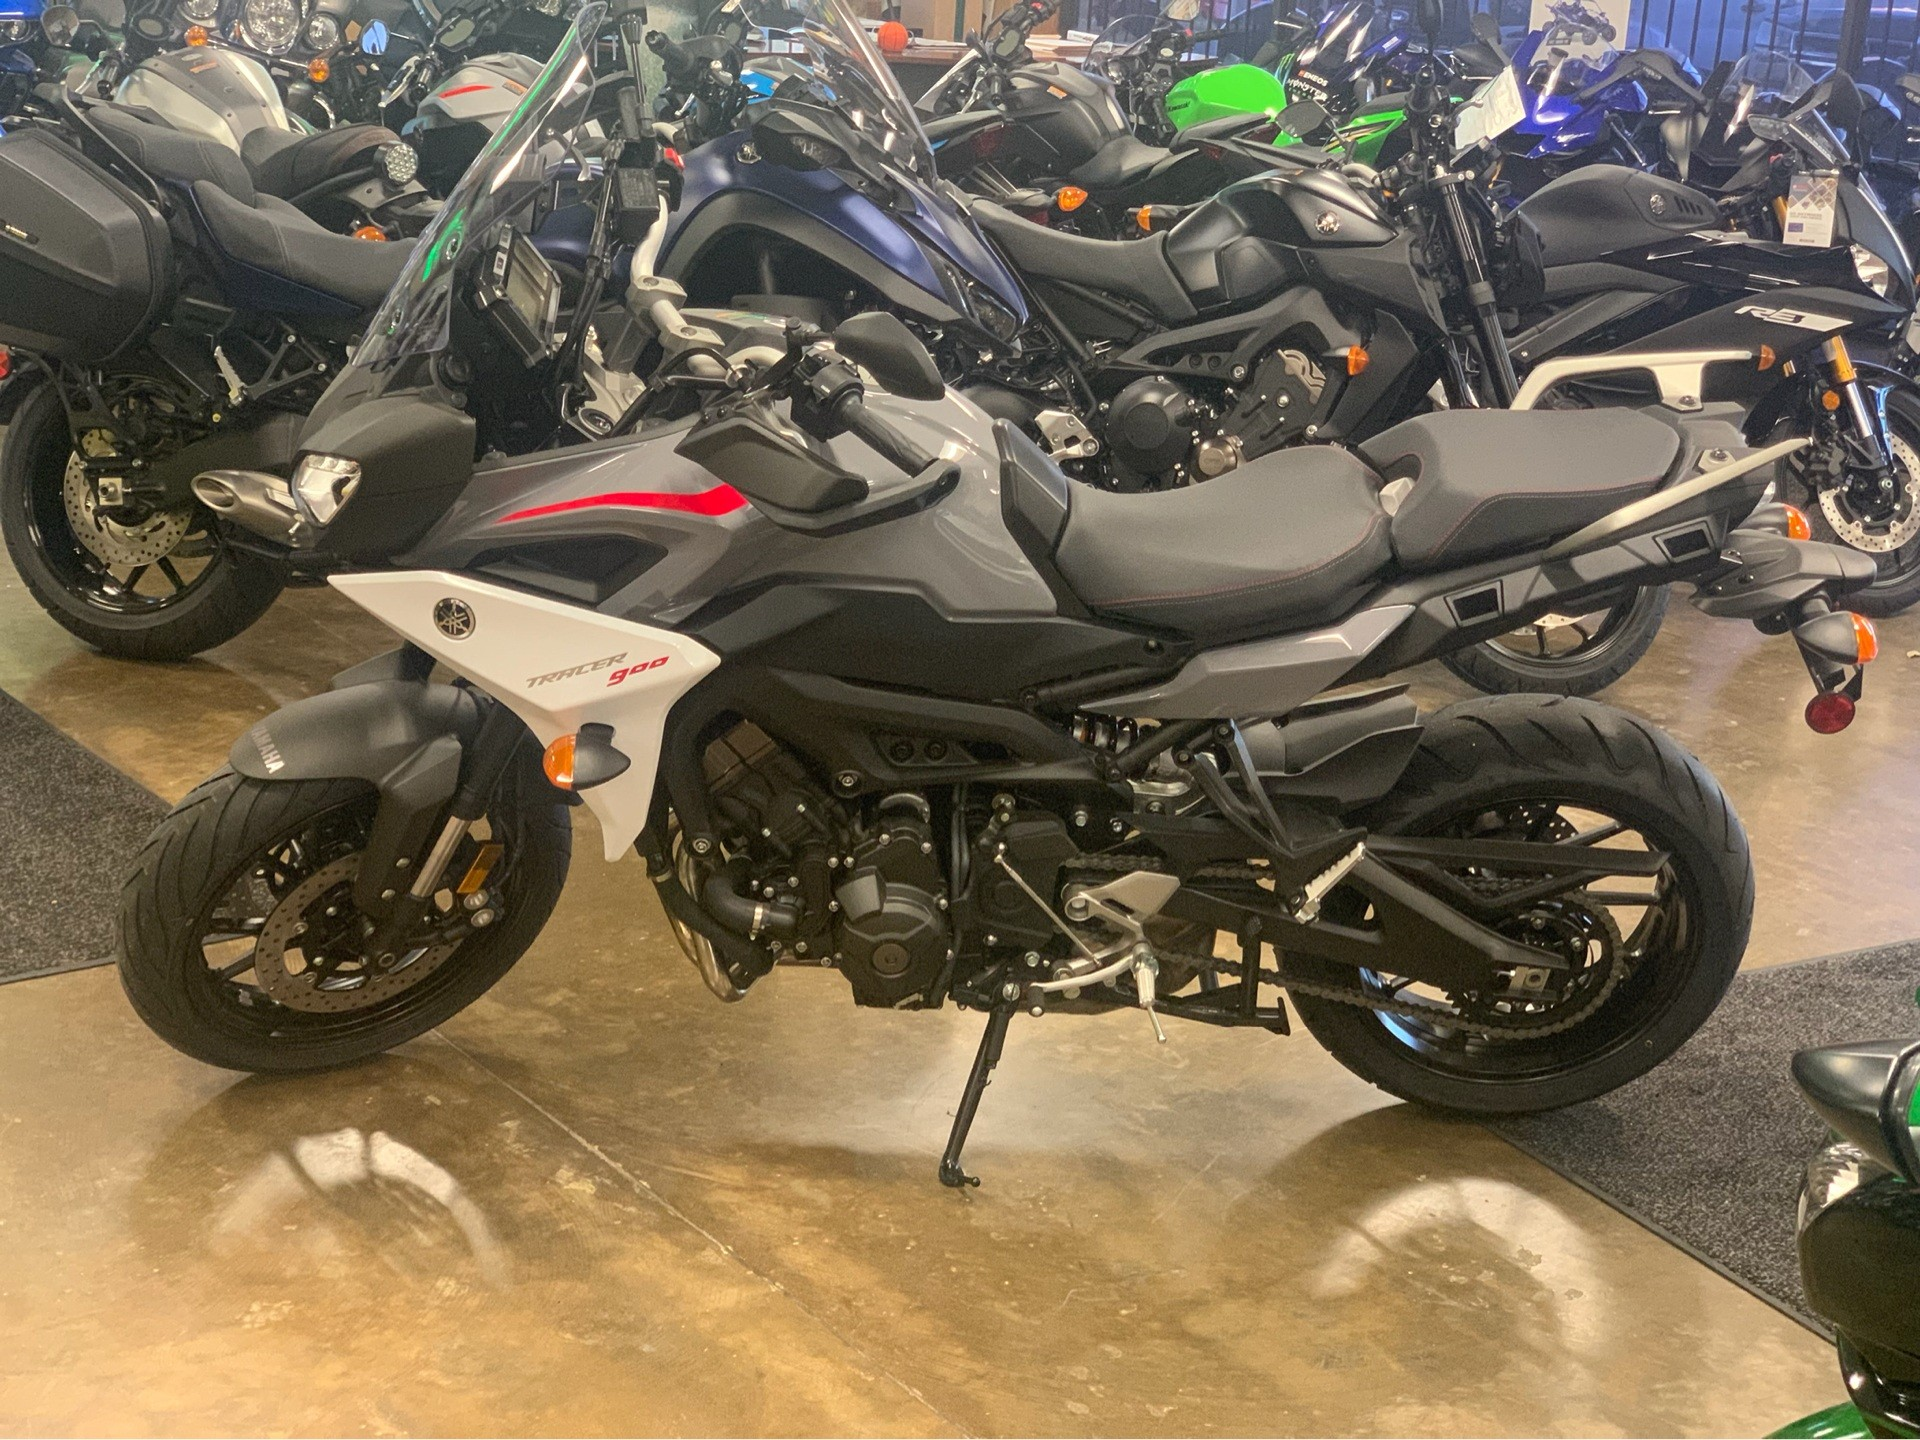 2019 Yamaha Tracer 900 in Orlando, Florida - Photo 1